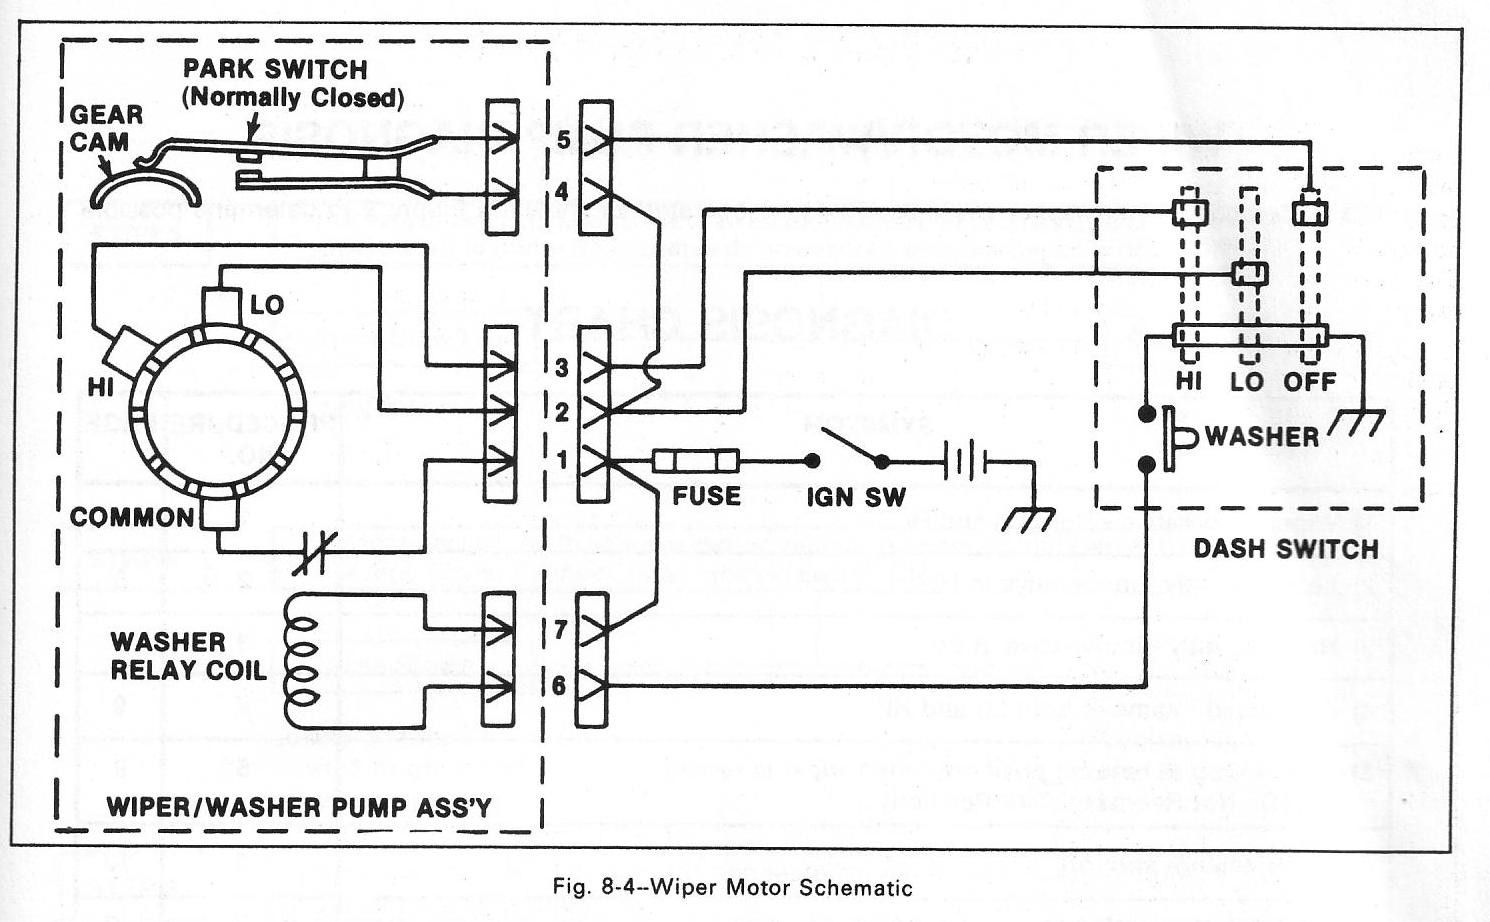 Park Switch And Windshield Wiper Wiring Diagram With Washer Relay Coil In Wiring Diagram Wiper